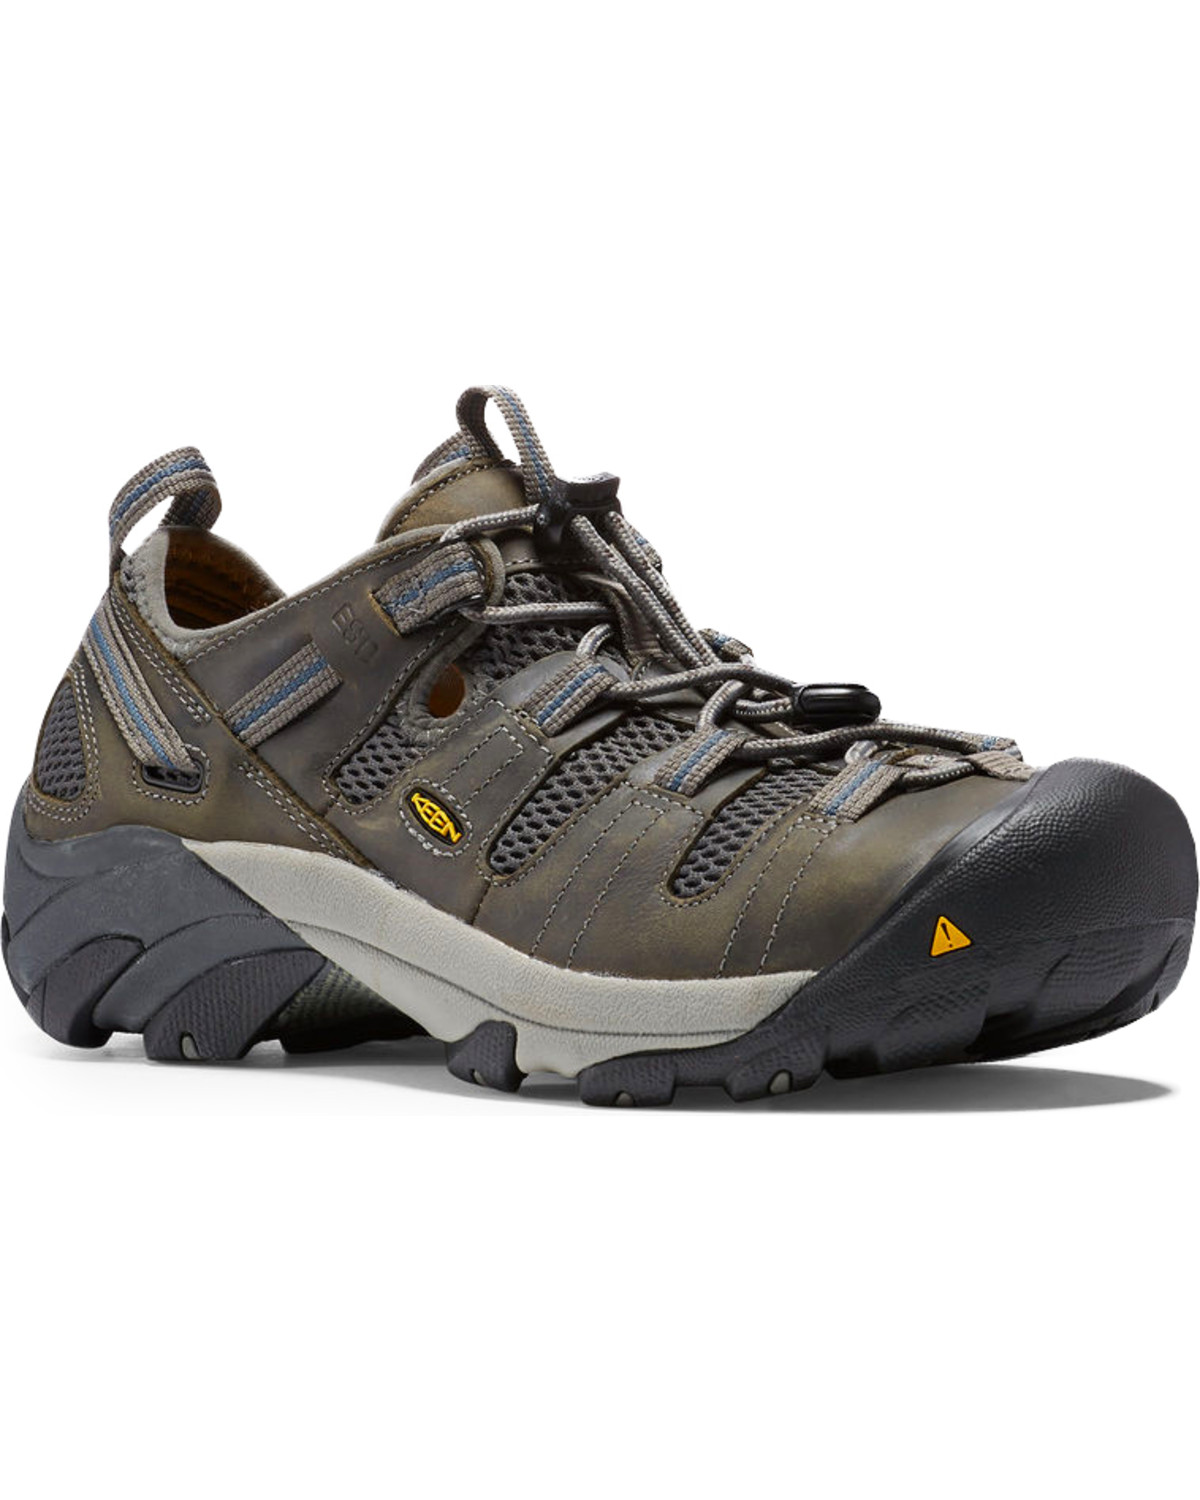 d91fa981ef9 Zoomed Image Keen Men's Atlanta Cool ESD Work Shoes, Grey, ...